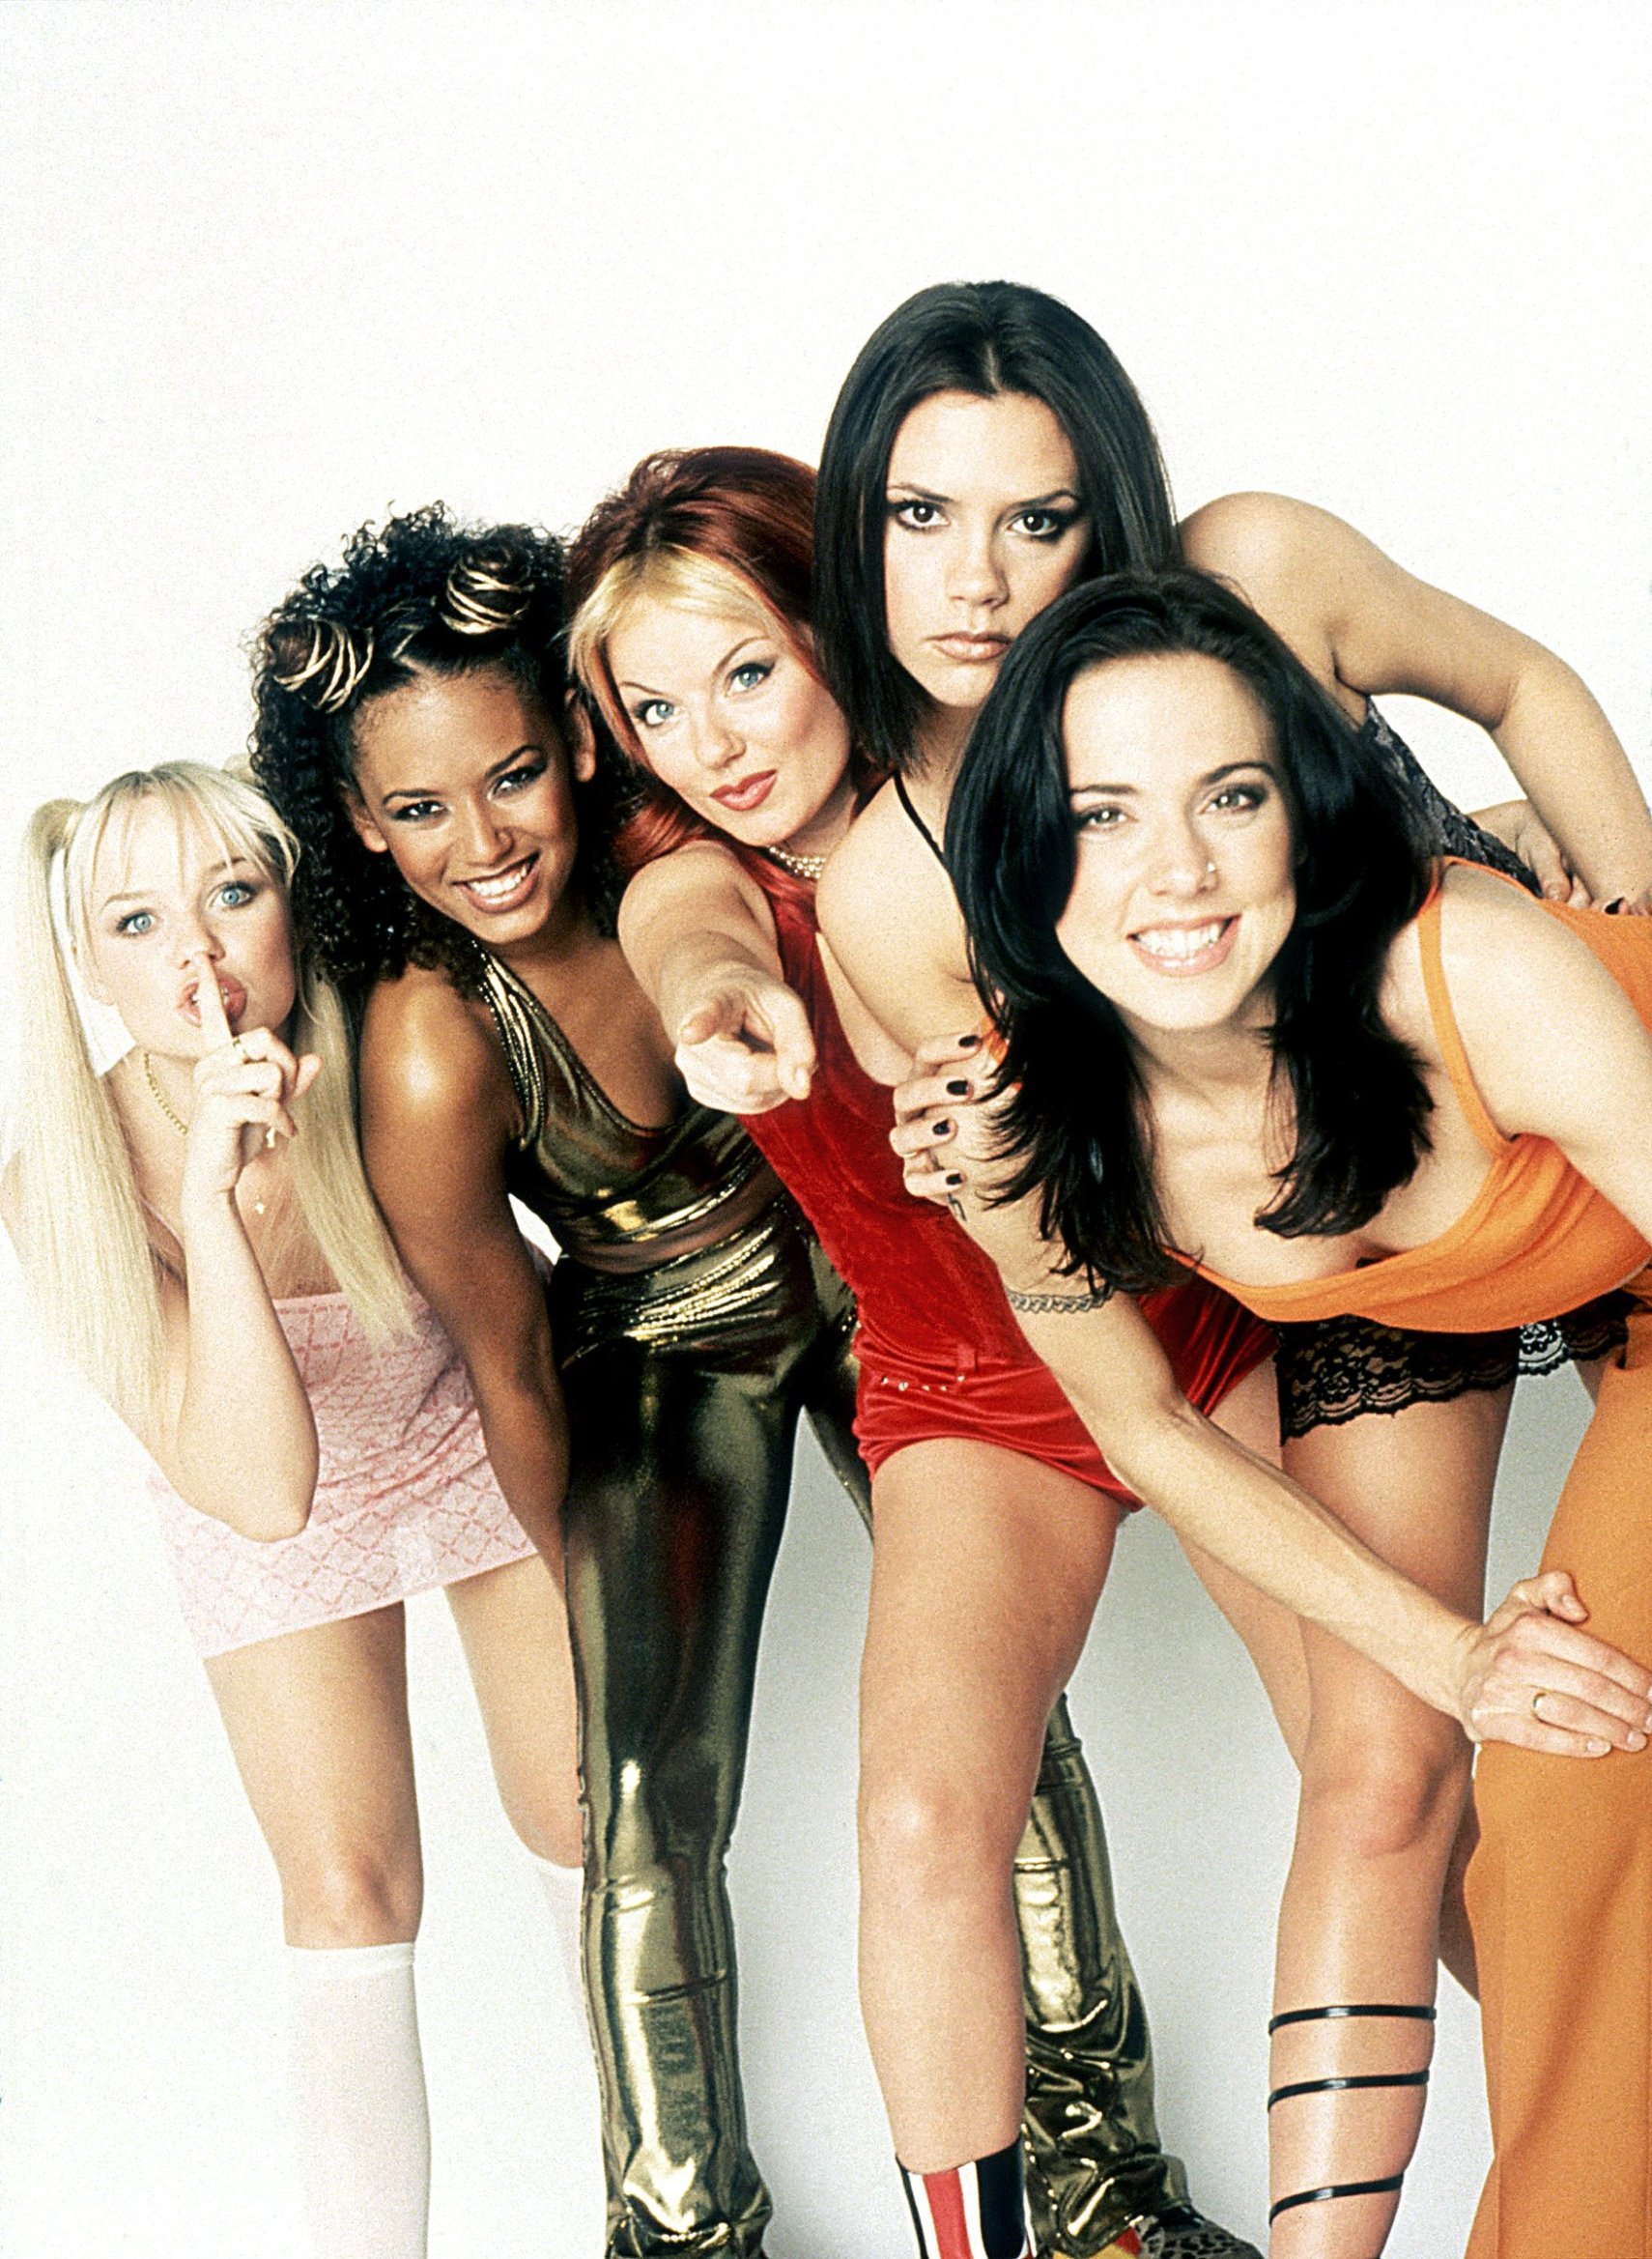 SPICE WORLD, Emma Bunton as Baby Spice, Melanie Brown as Scary Spice, Geri Halliwell as Ginger Spice, Victoria Beckham as Posh Spice, Melanie Chisholm as Sporty Spice, 1997, (c) Columbia/courtesy Everett Collection, Image: 98046133, License: Rights-managed, Restrictions: For usage credit please use; ©Columbia Pictures/Courtesy Everett Collection, Model Release: no, Credit line: Profimedia, Everett